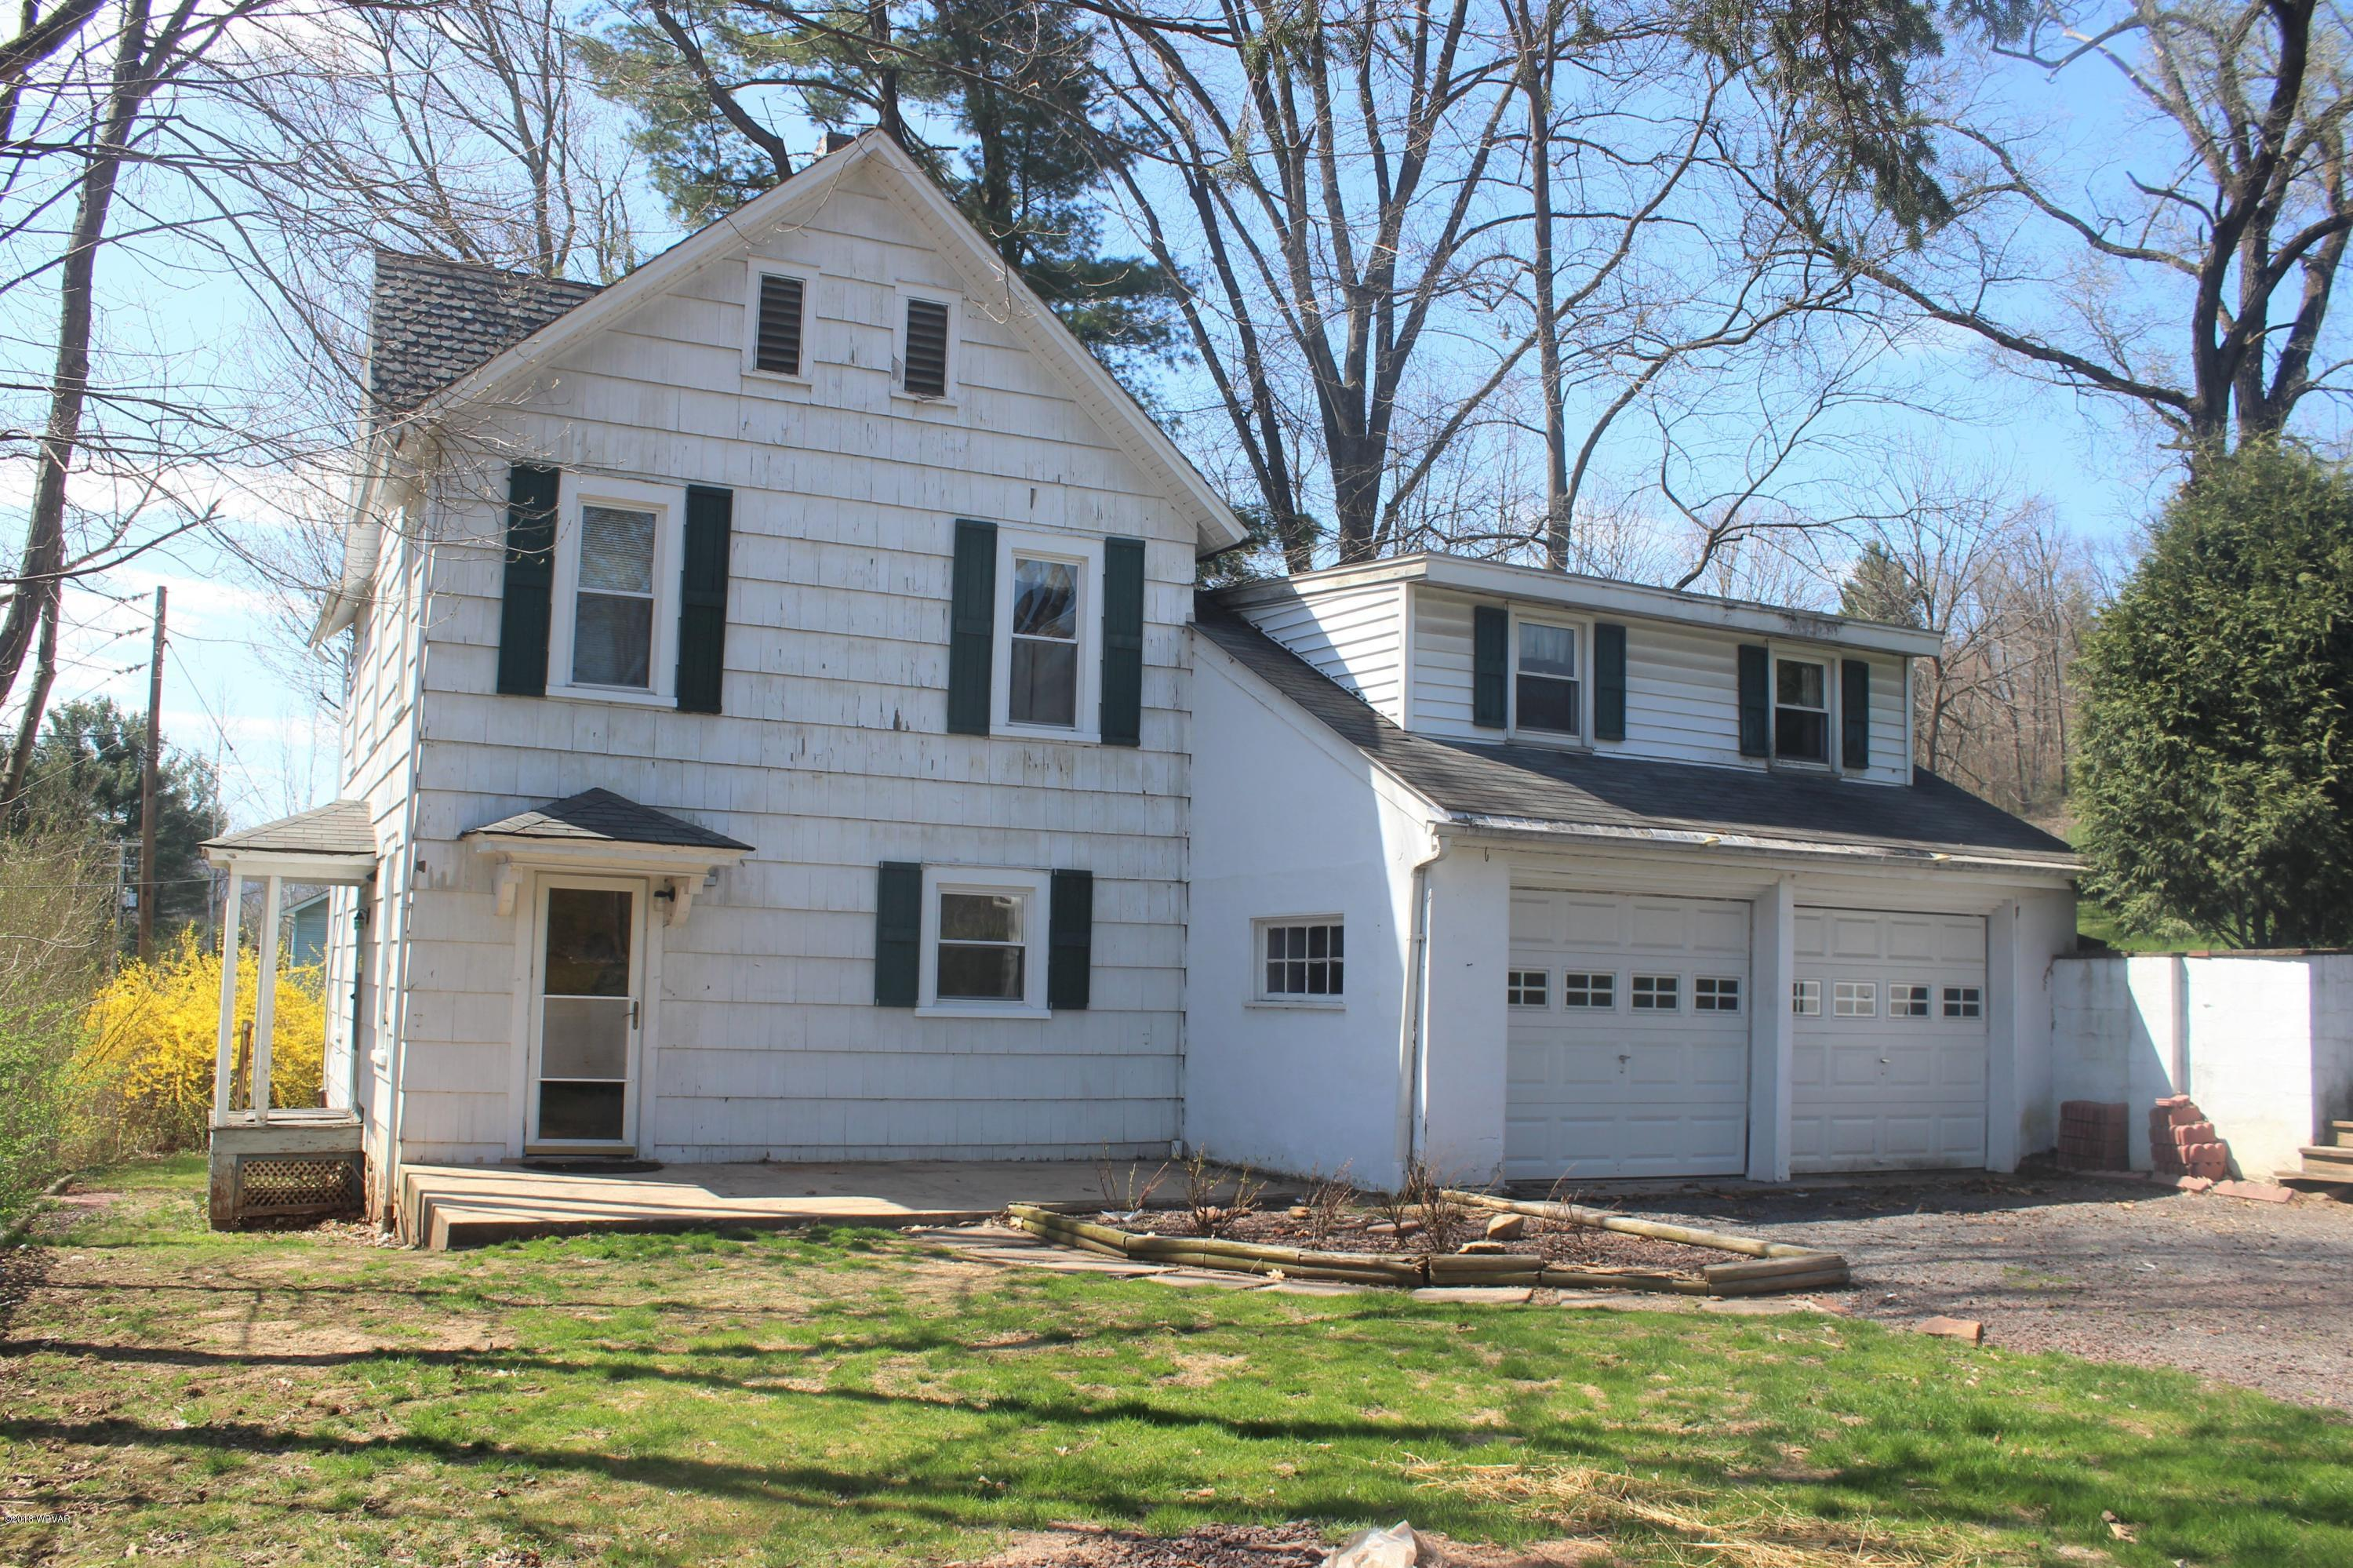 76 STATE 973 ROUTE HIGHWAY,Cogan Station,PA 17728,4 Bedrooms Bedrooms,1 BathroomBathrooms,Residential,STATE 973 ROUTE,WB-86235